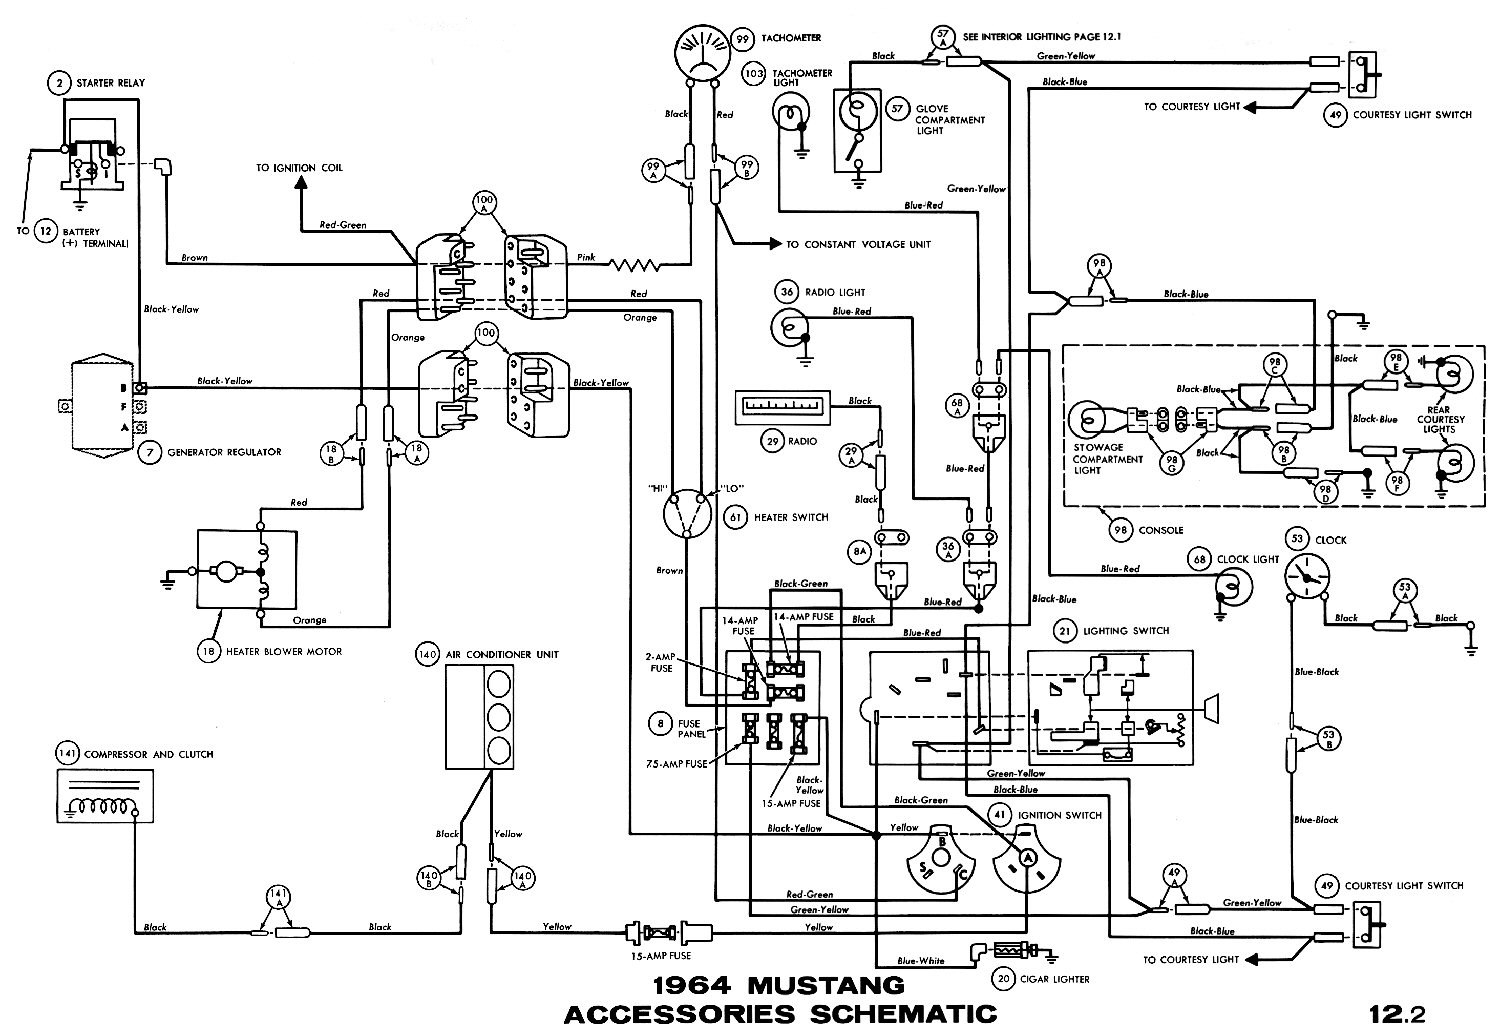 hight resolution of 1965 mustang distributor wiring diagram schematic wiring diagramphoto 1967 ford mustang 289 factory distributor wiring simple